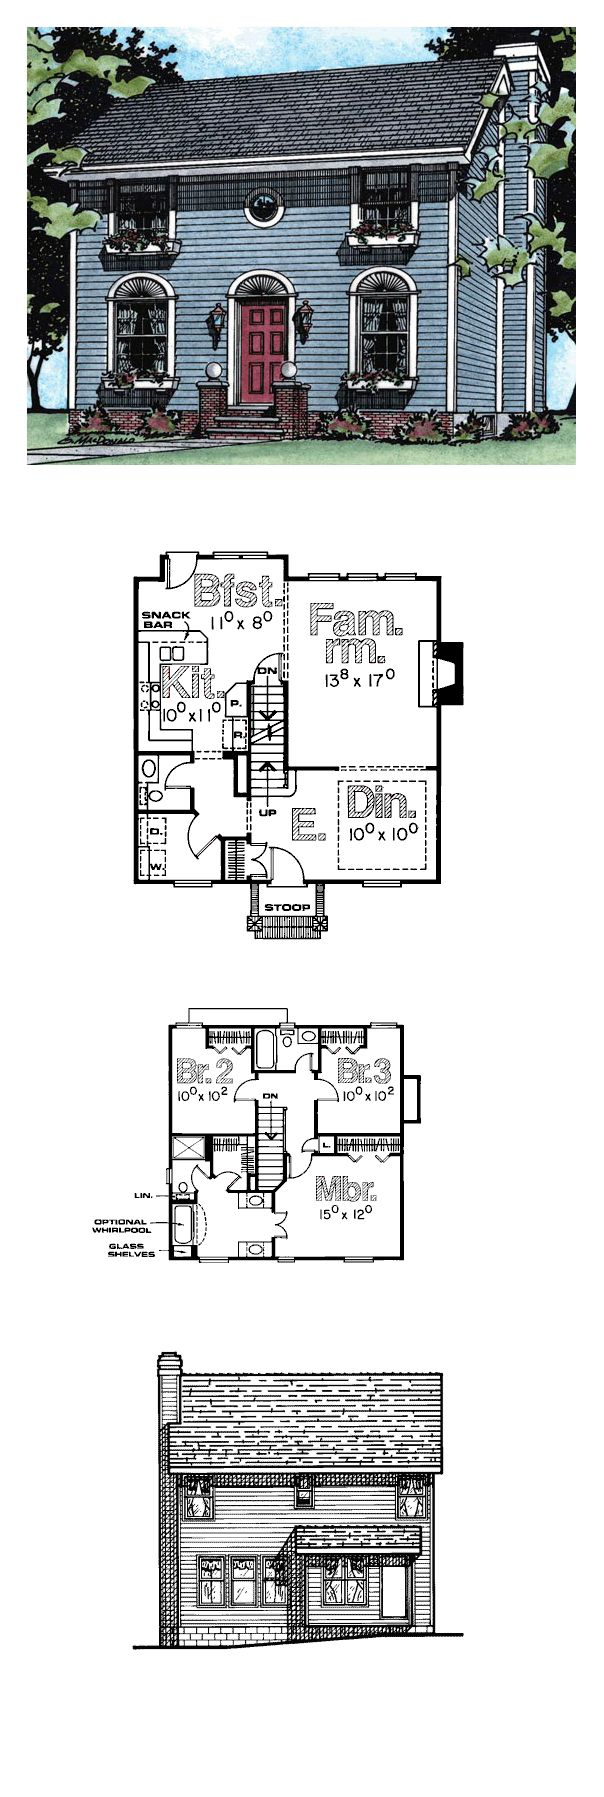 Historic style cool house plan id chp 21591 total for Cool house plans details